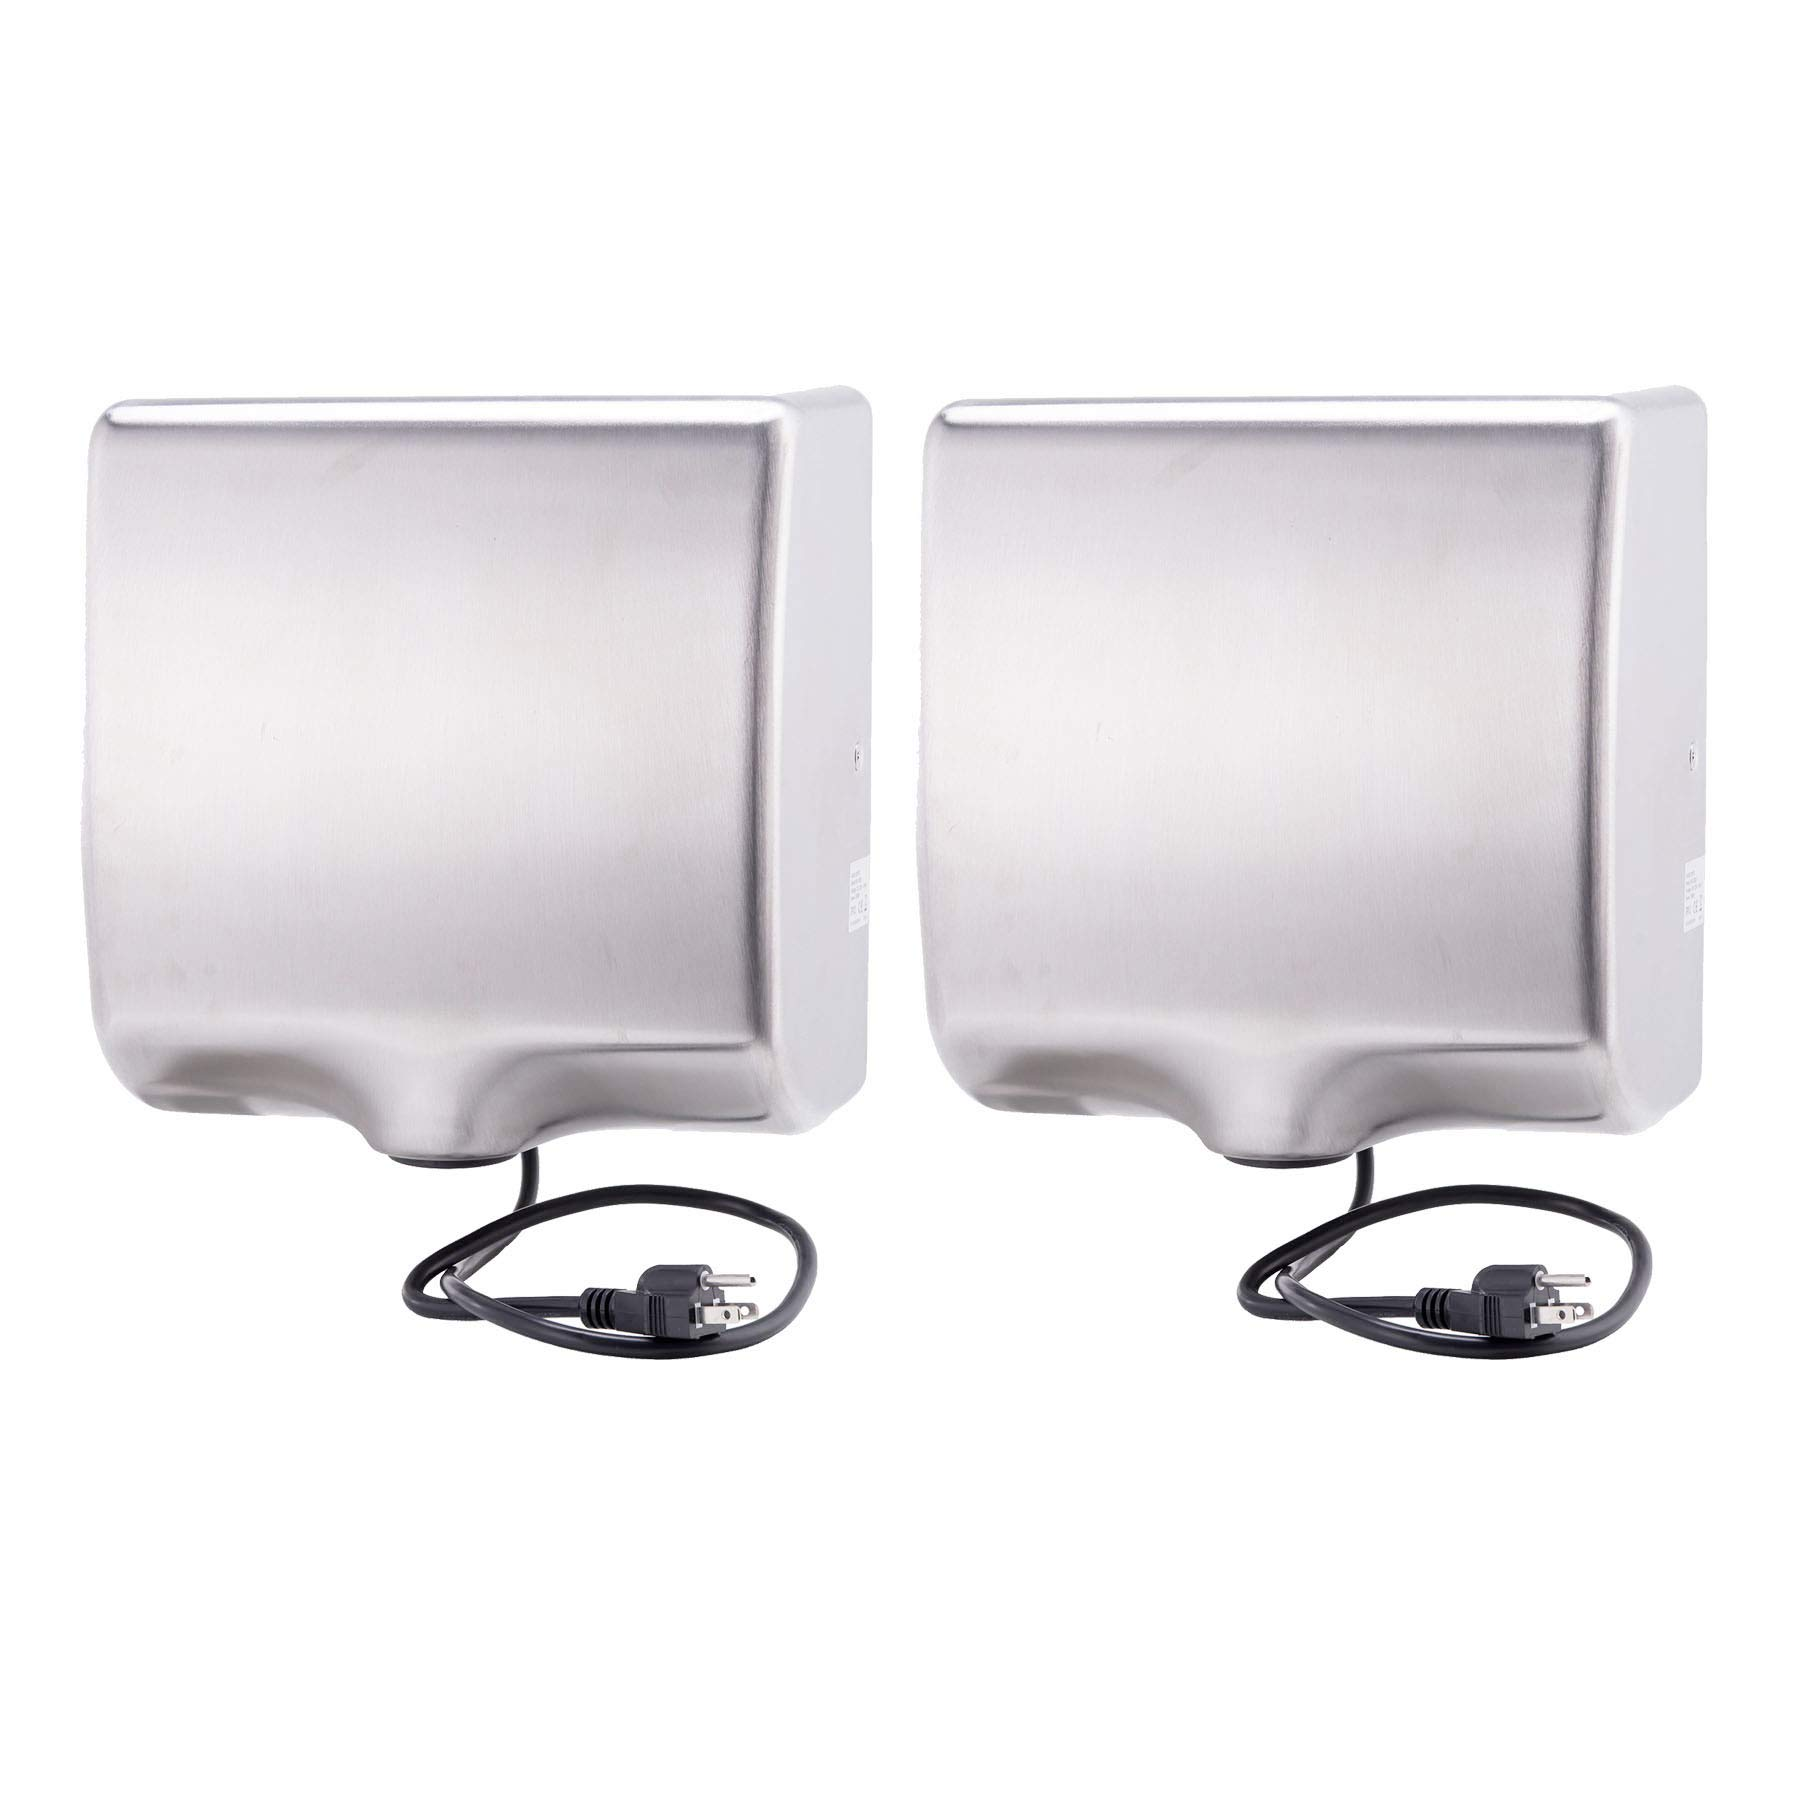 Commercial Automatic Air Hand Dryer High Speed Heavy Duty 1800w Matte Finished Automatic Hand Dryer Brushed Stainless Steel Shell, Set of 2